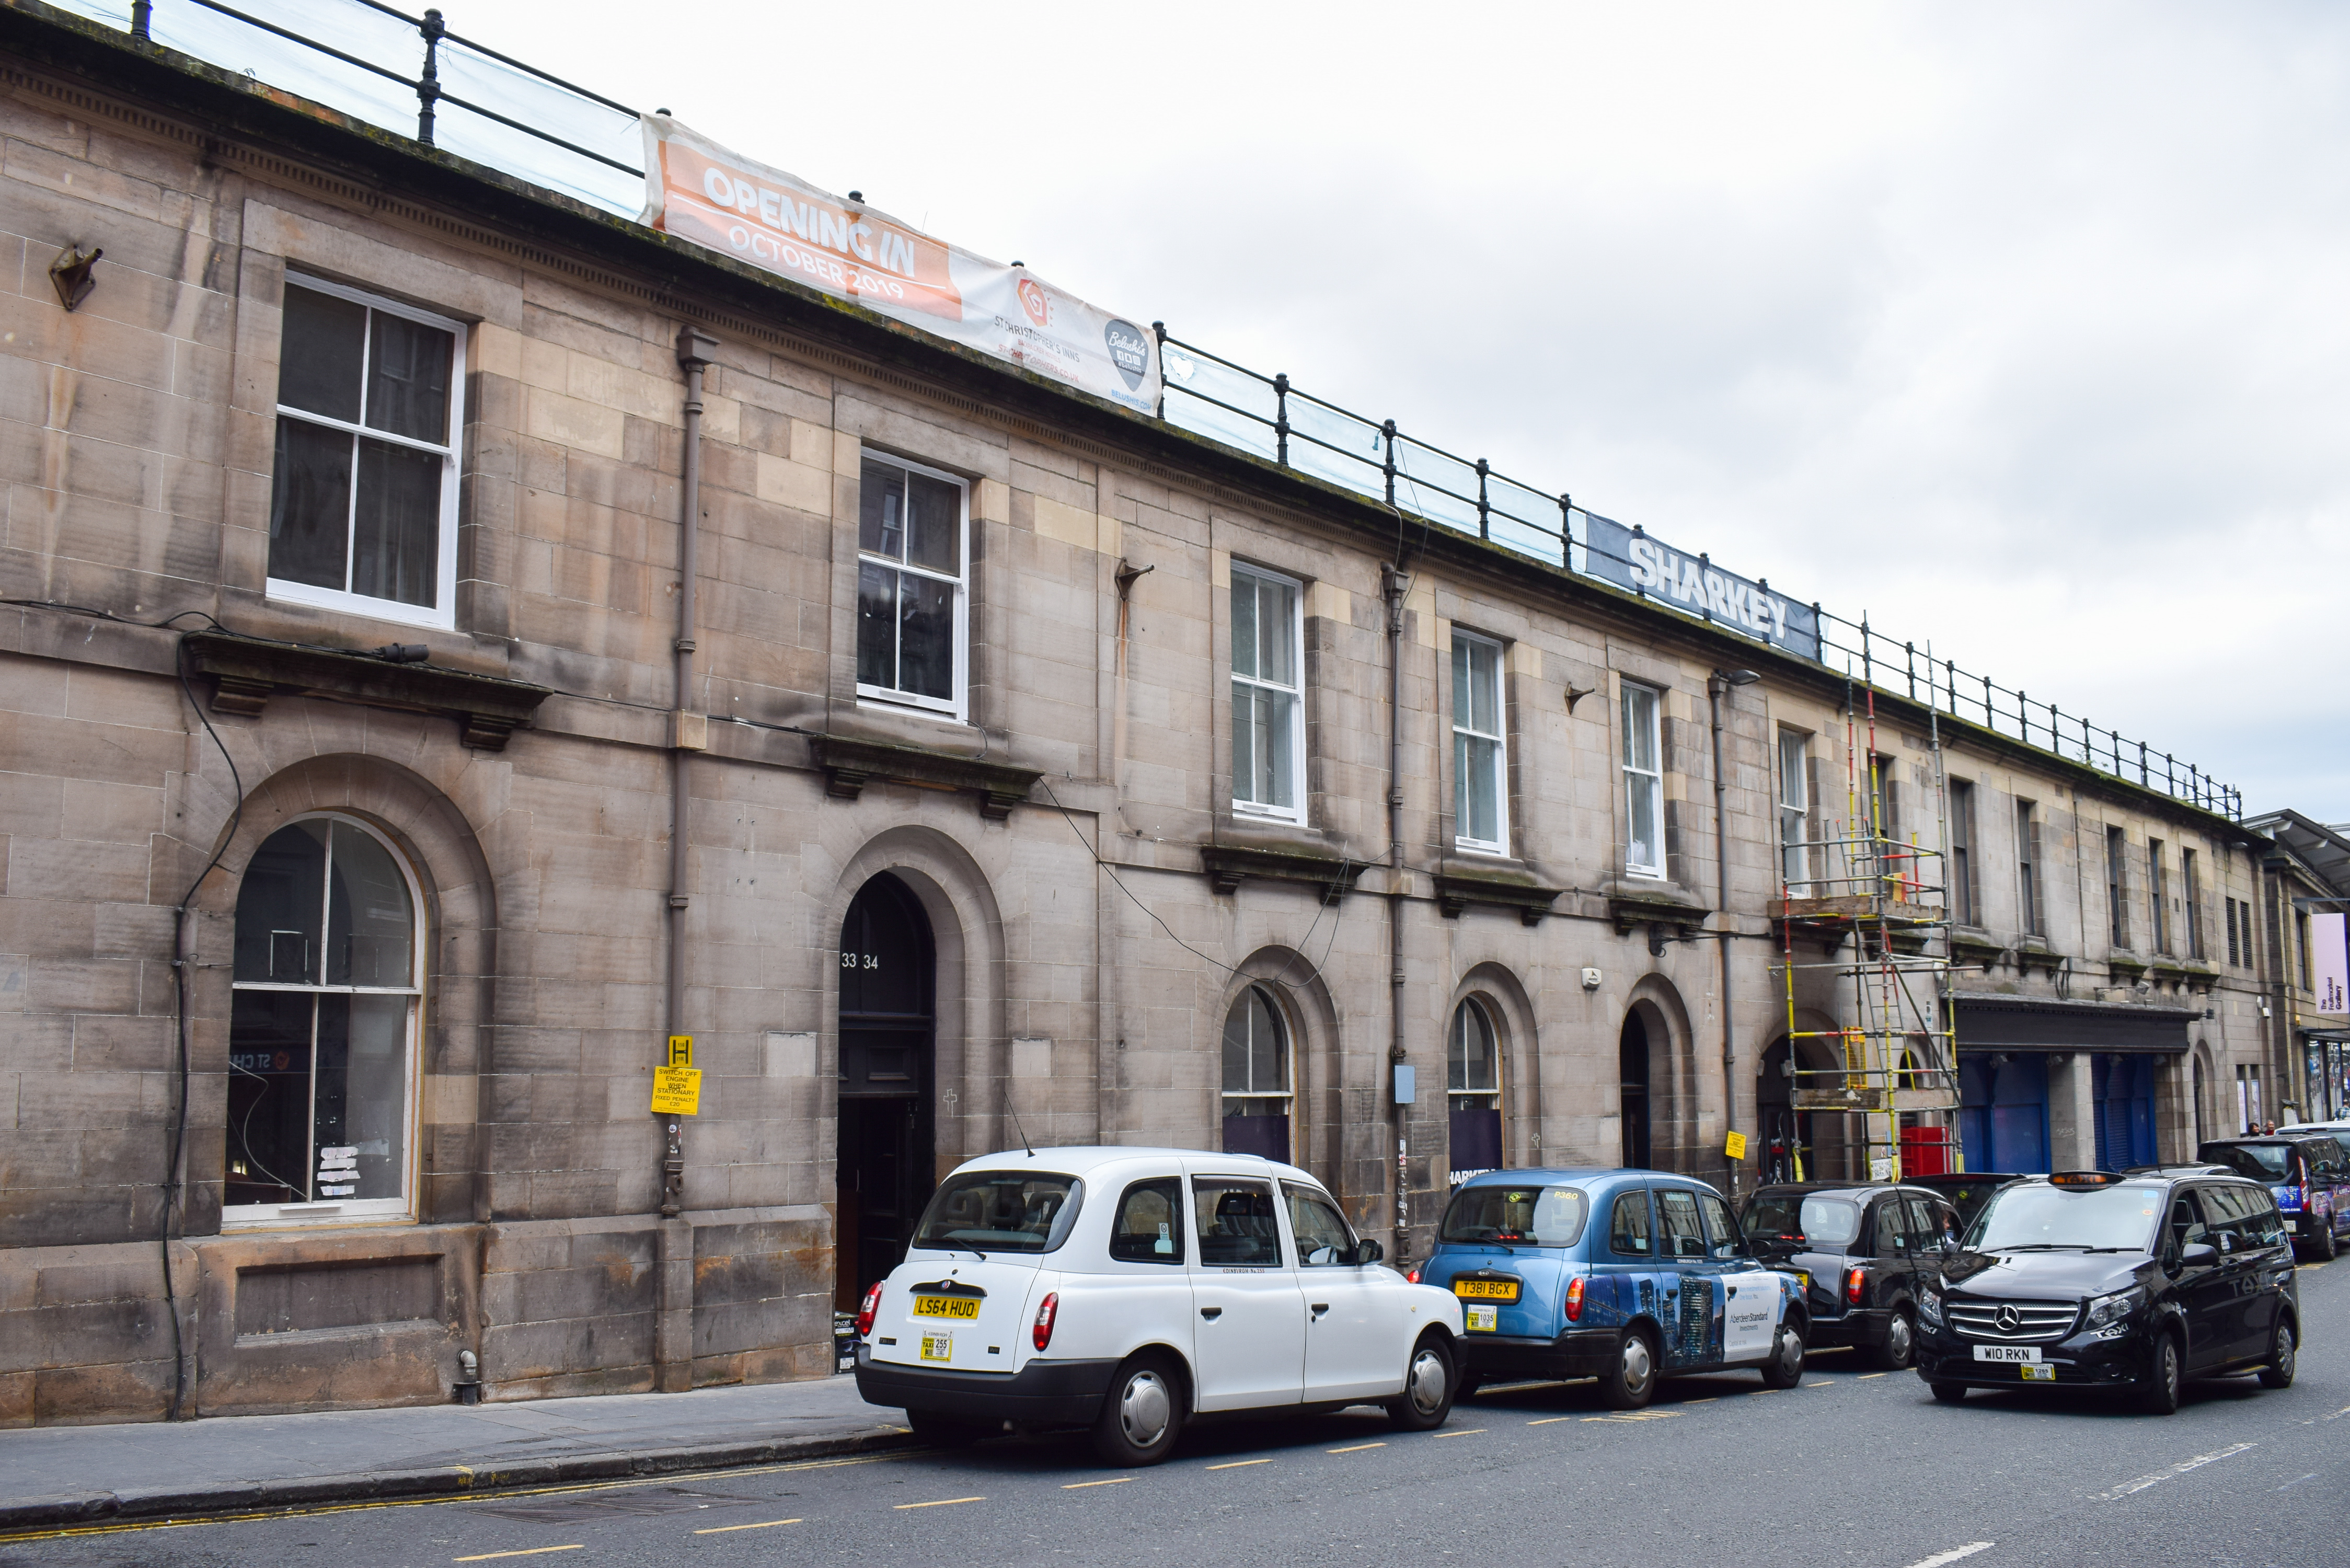 New venue for St Chrisopher's Inn in Market Street, Edinburgh